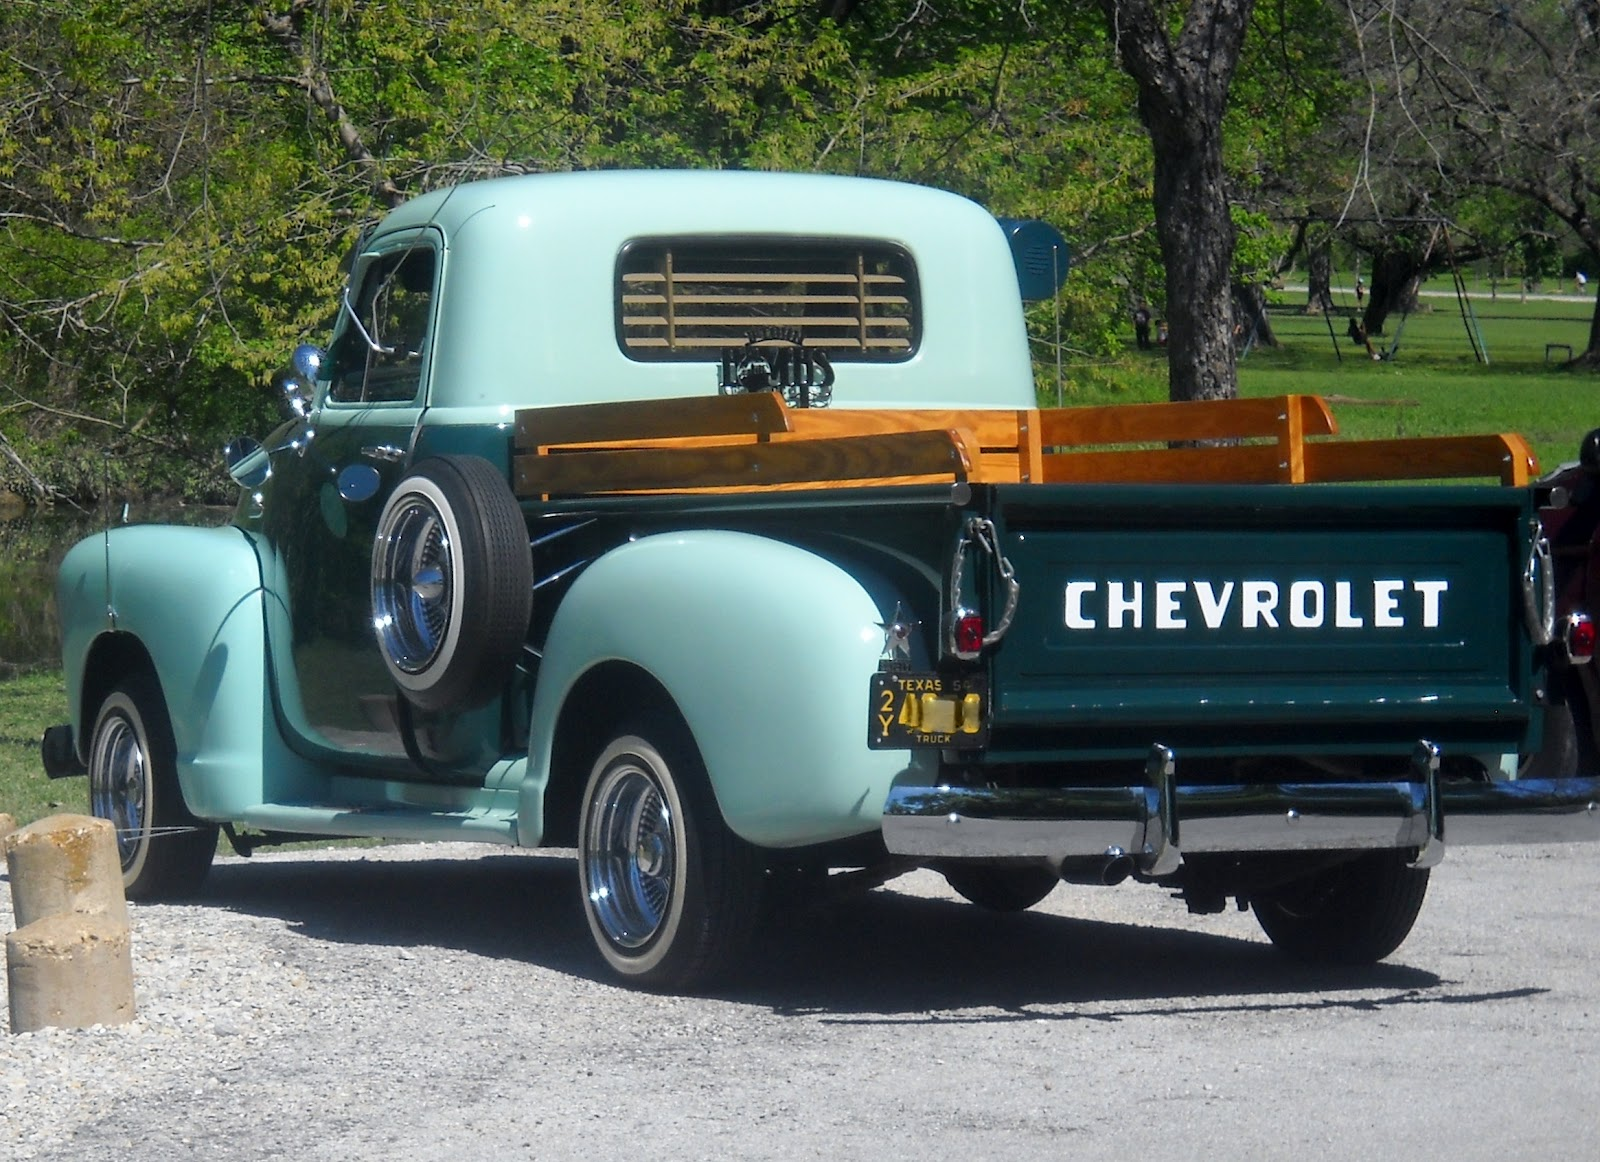 Lake, Dallas, Texas: Restored 194039;s Chevy Truck at White Rock Lake